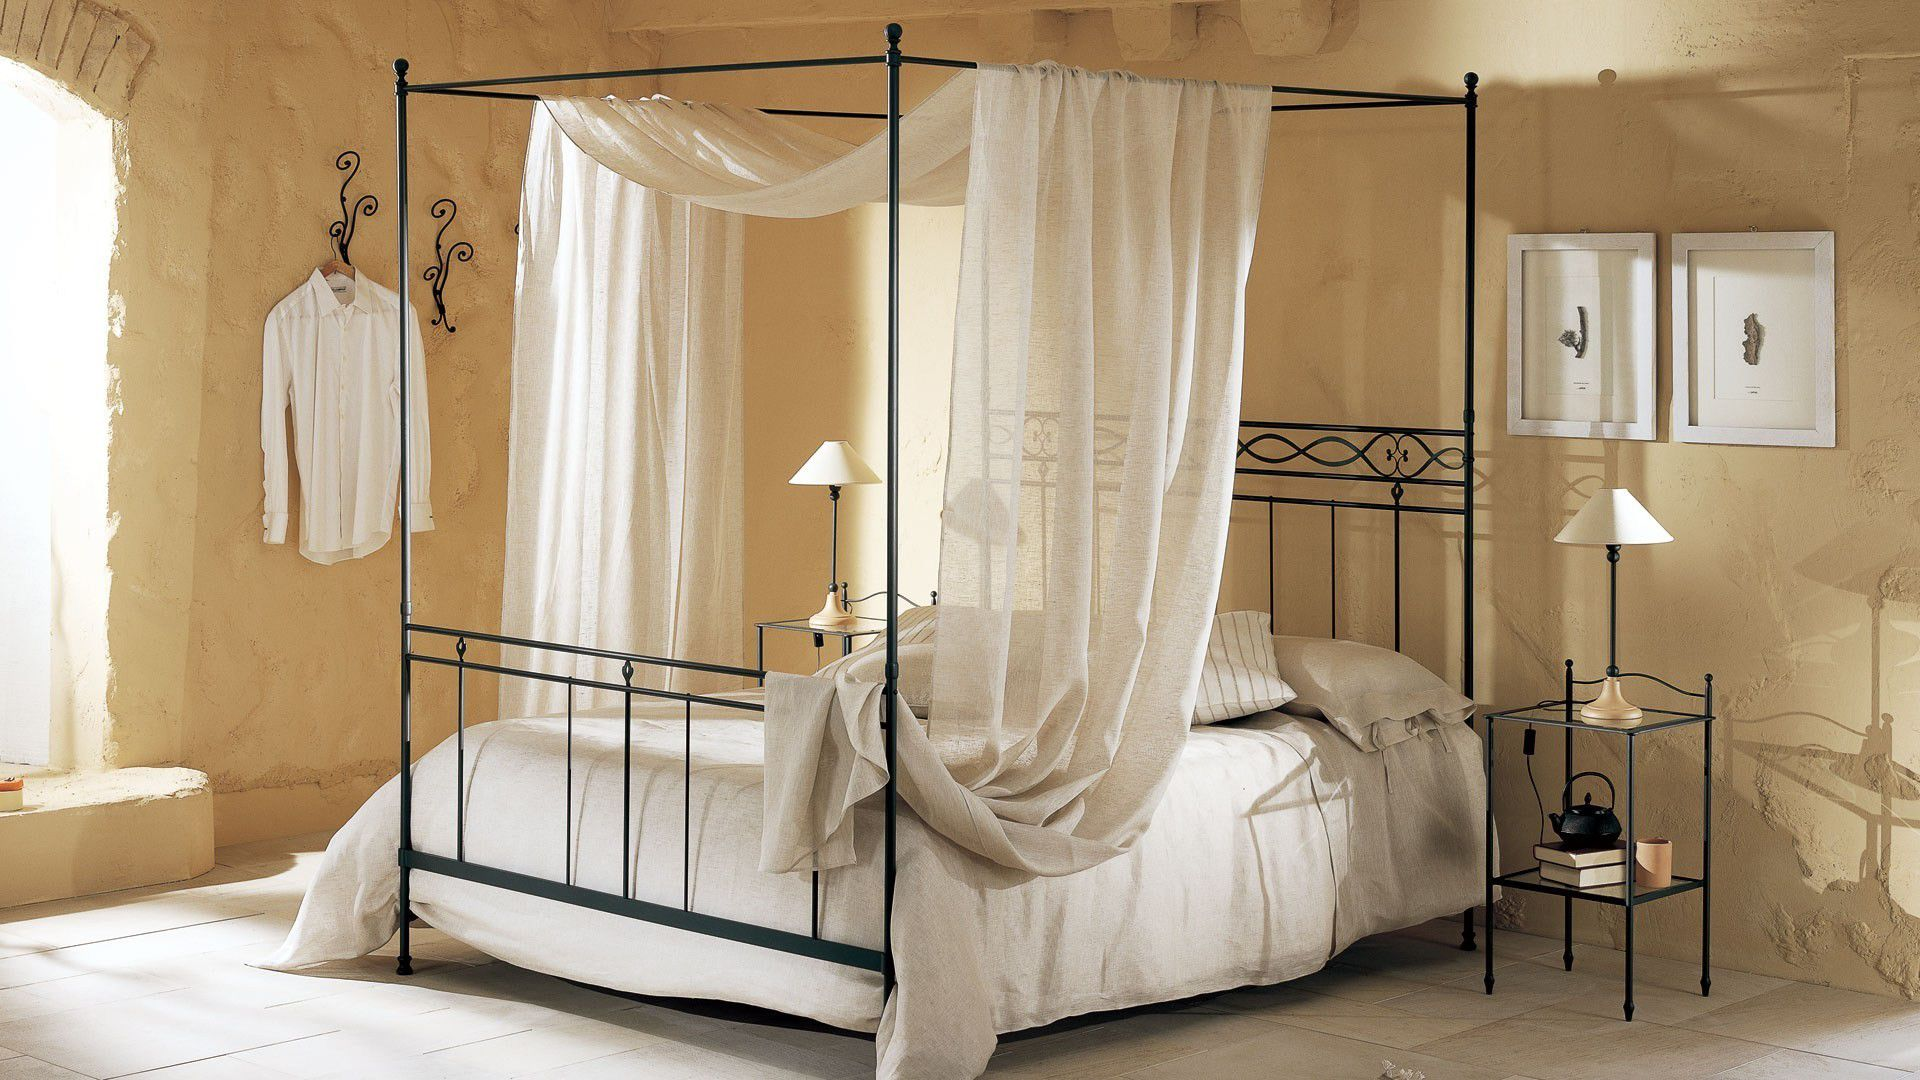 Sheer Curtain Completing Dark Canopy Bed Frame inside Old Fashioned Bedroom with Metal Side Tables